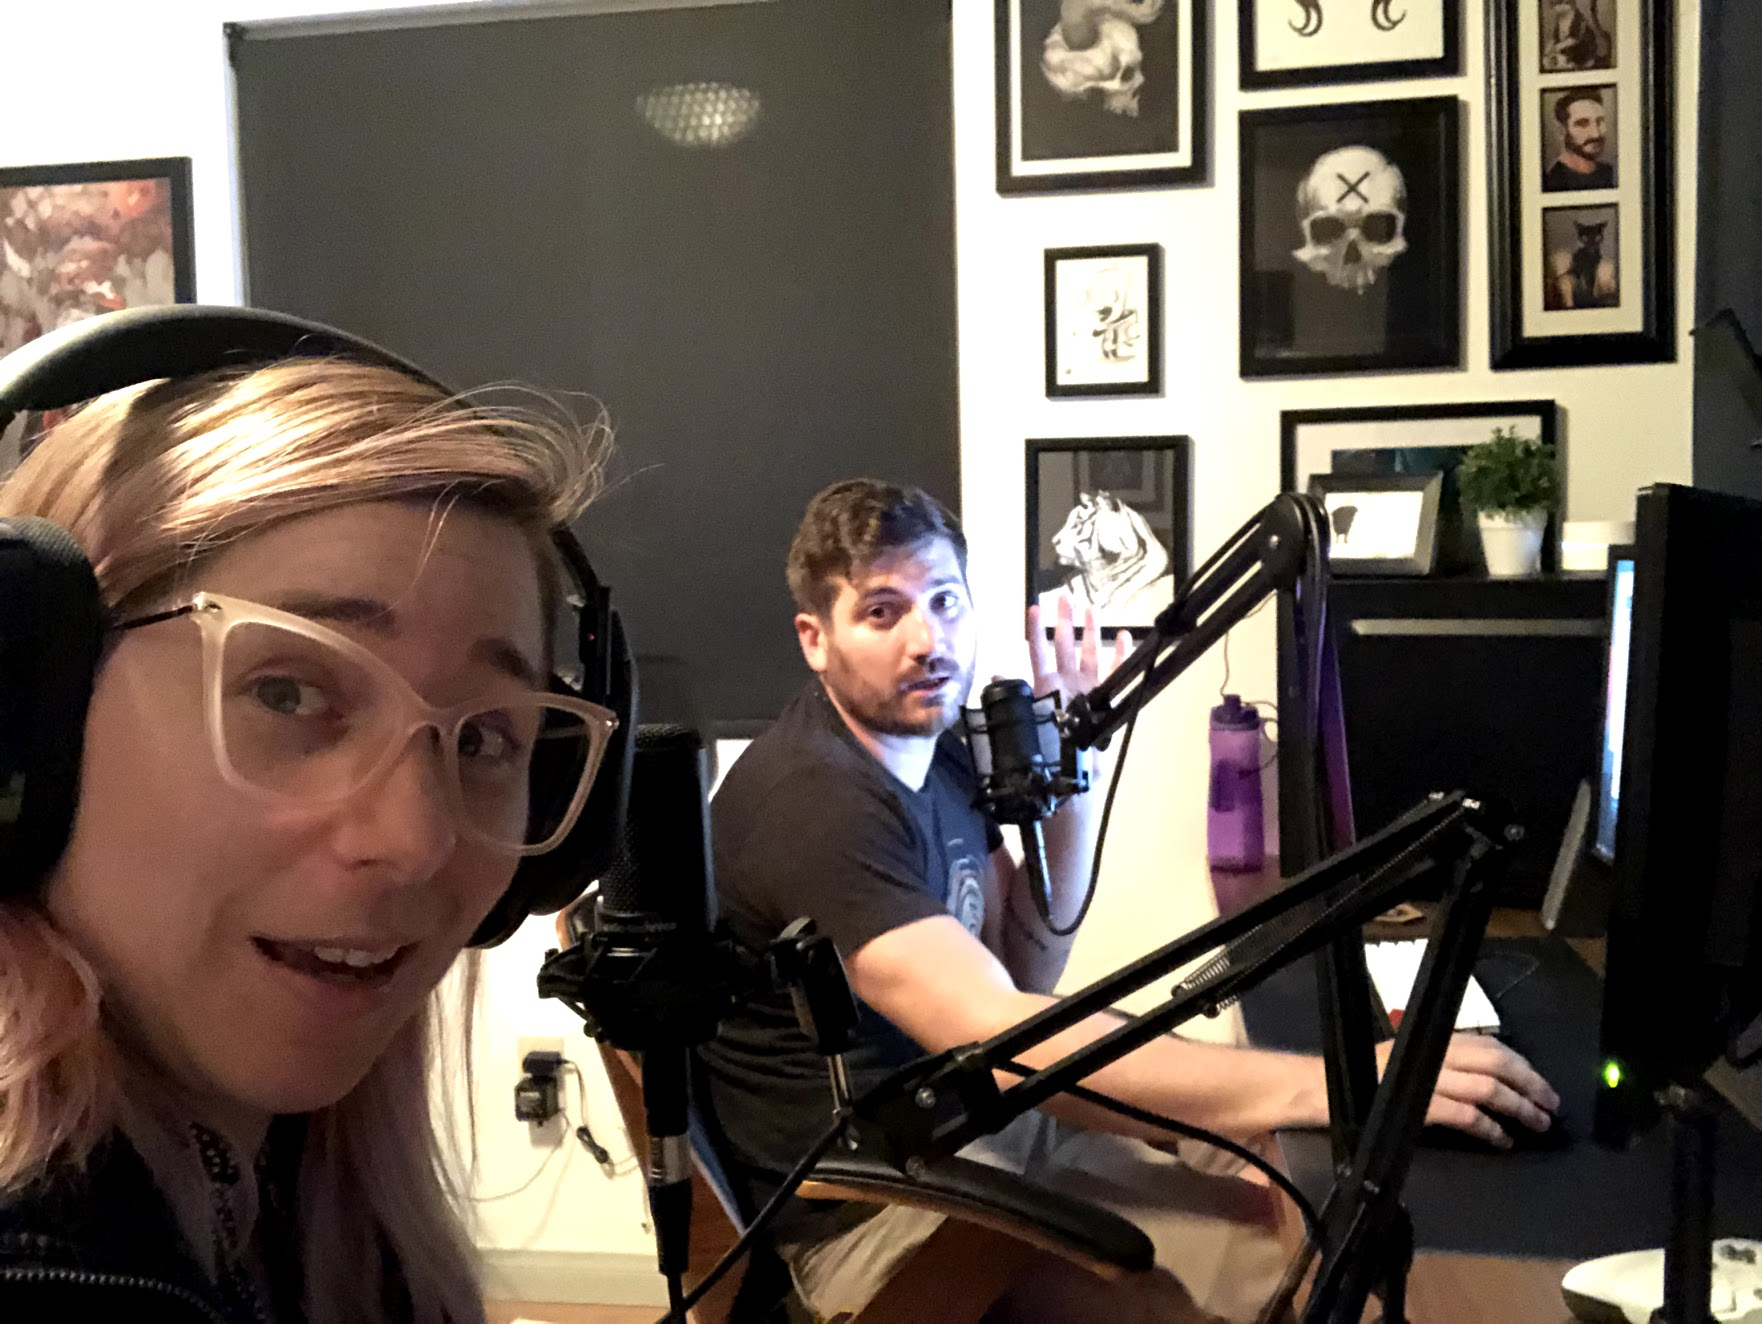 BTS with Adam Kovic recording the episode in our home office!